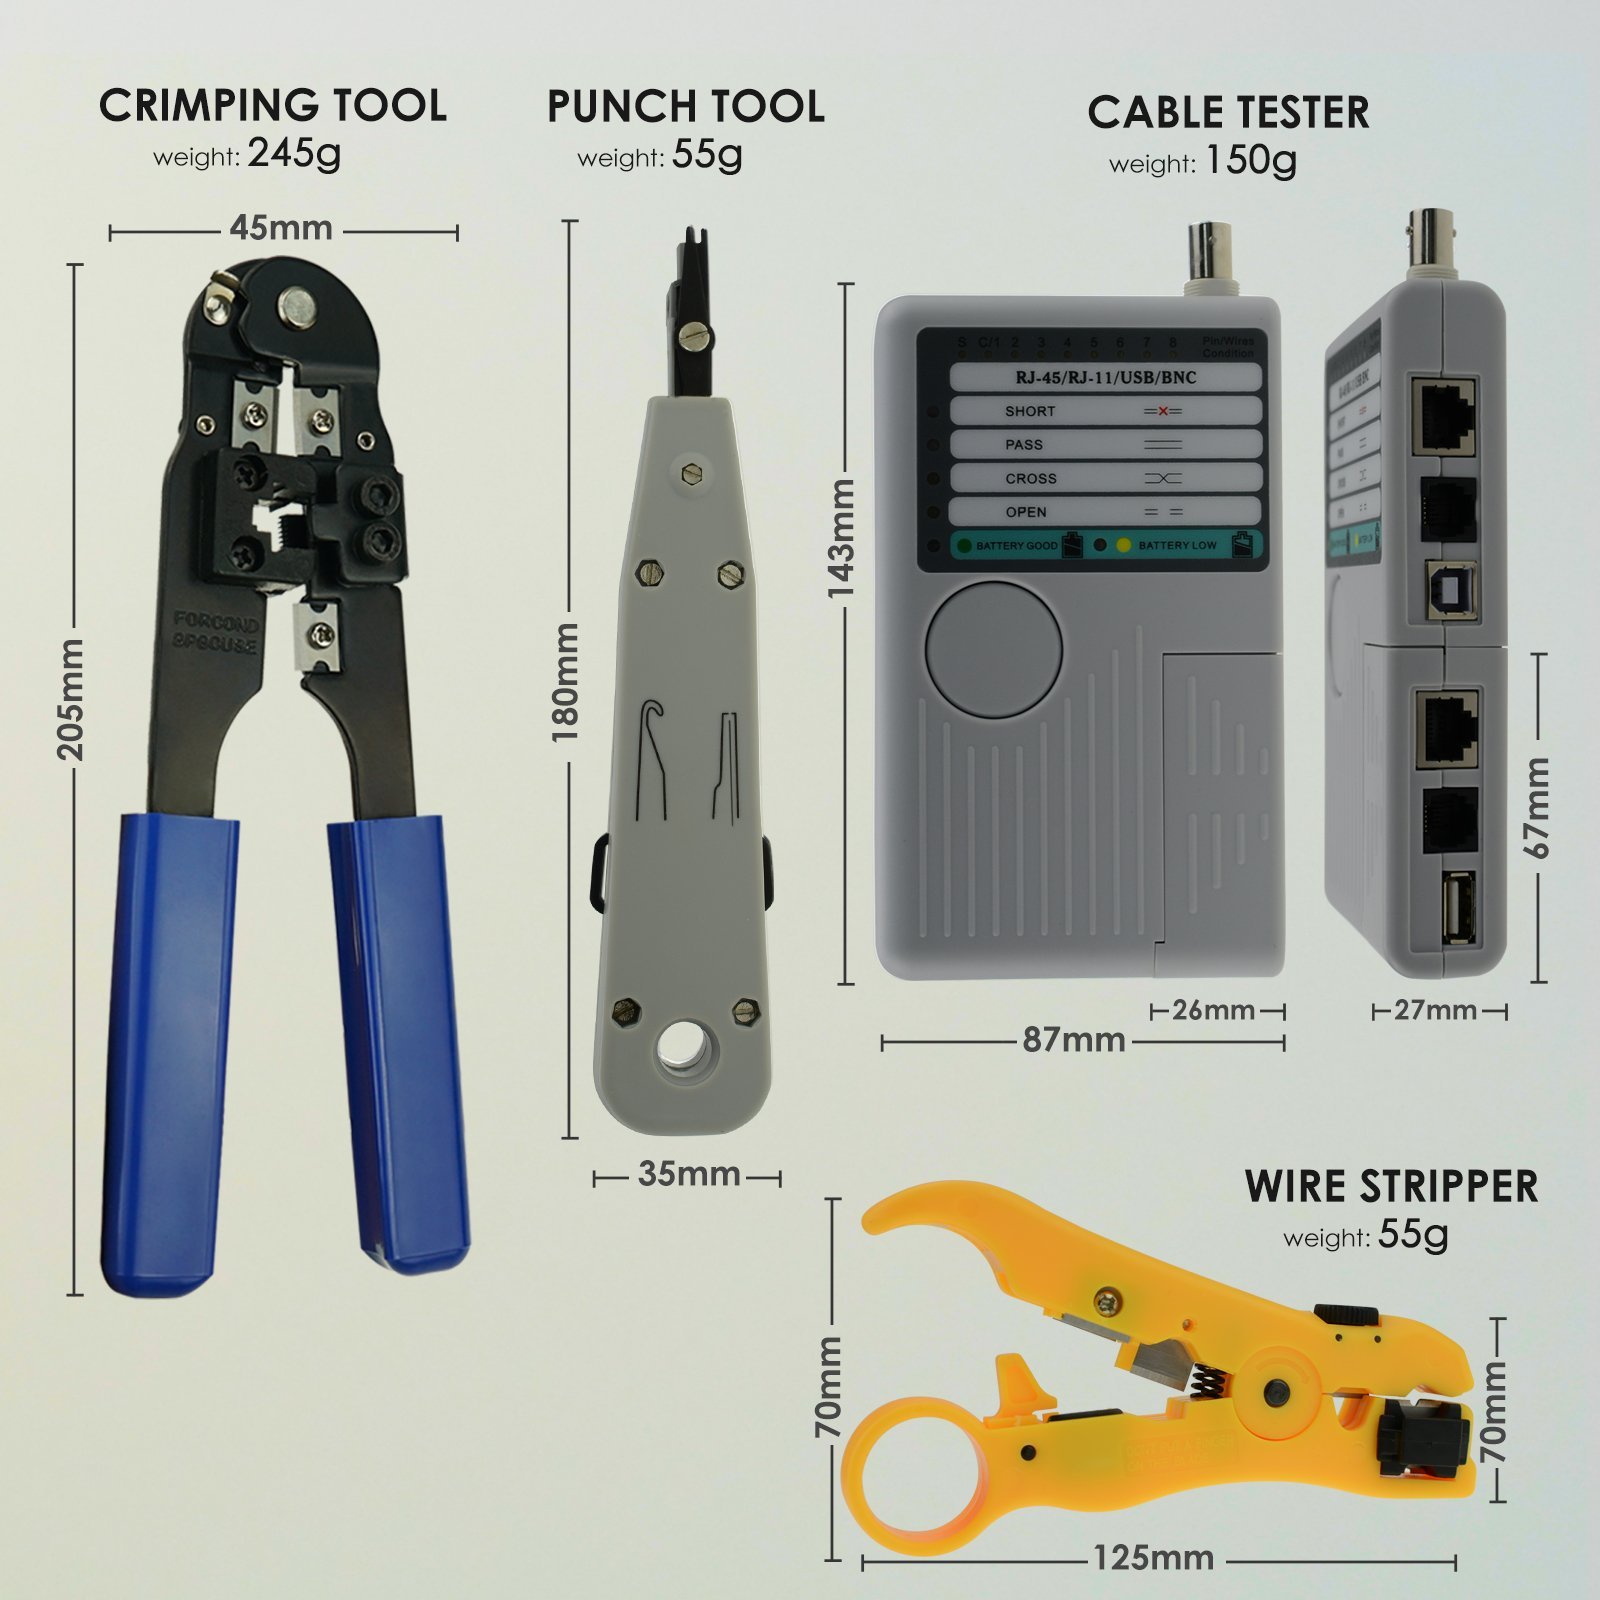 Combo Set Network 4 In 1 Coax Cable Tester Tool Kit Rj45 Rj11 Usb Lan 10base Bnc Rg45 And Etc Circuit Testers This Toolkit Is Consists Of Parts Wire Stripper Plug Crimping Punch Down The Combination